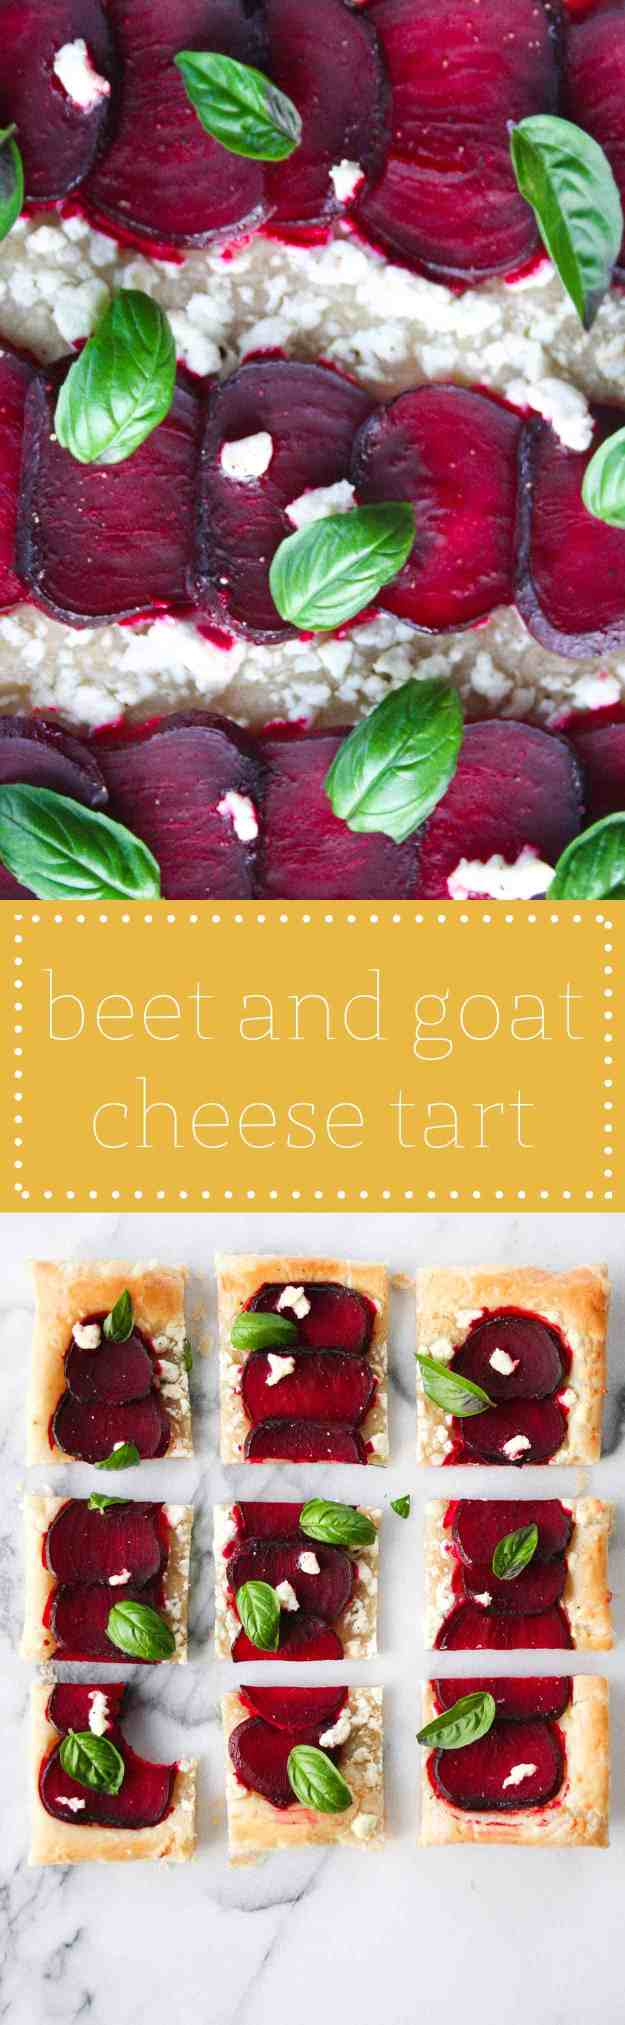 5 Ingredient Beet and Goat Cheese Tart | hungrybynature.com